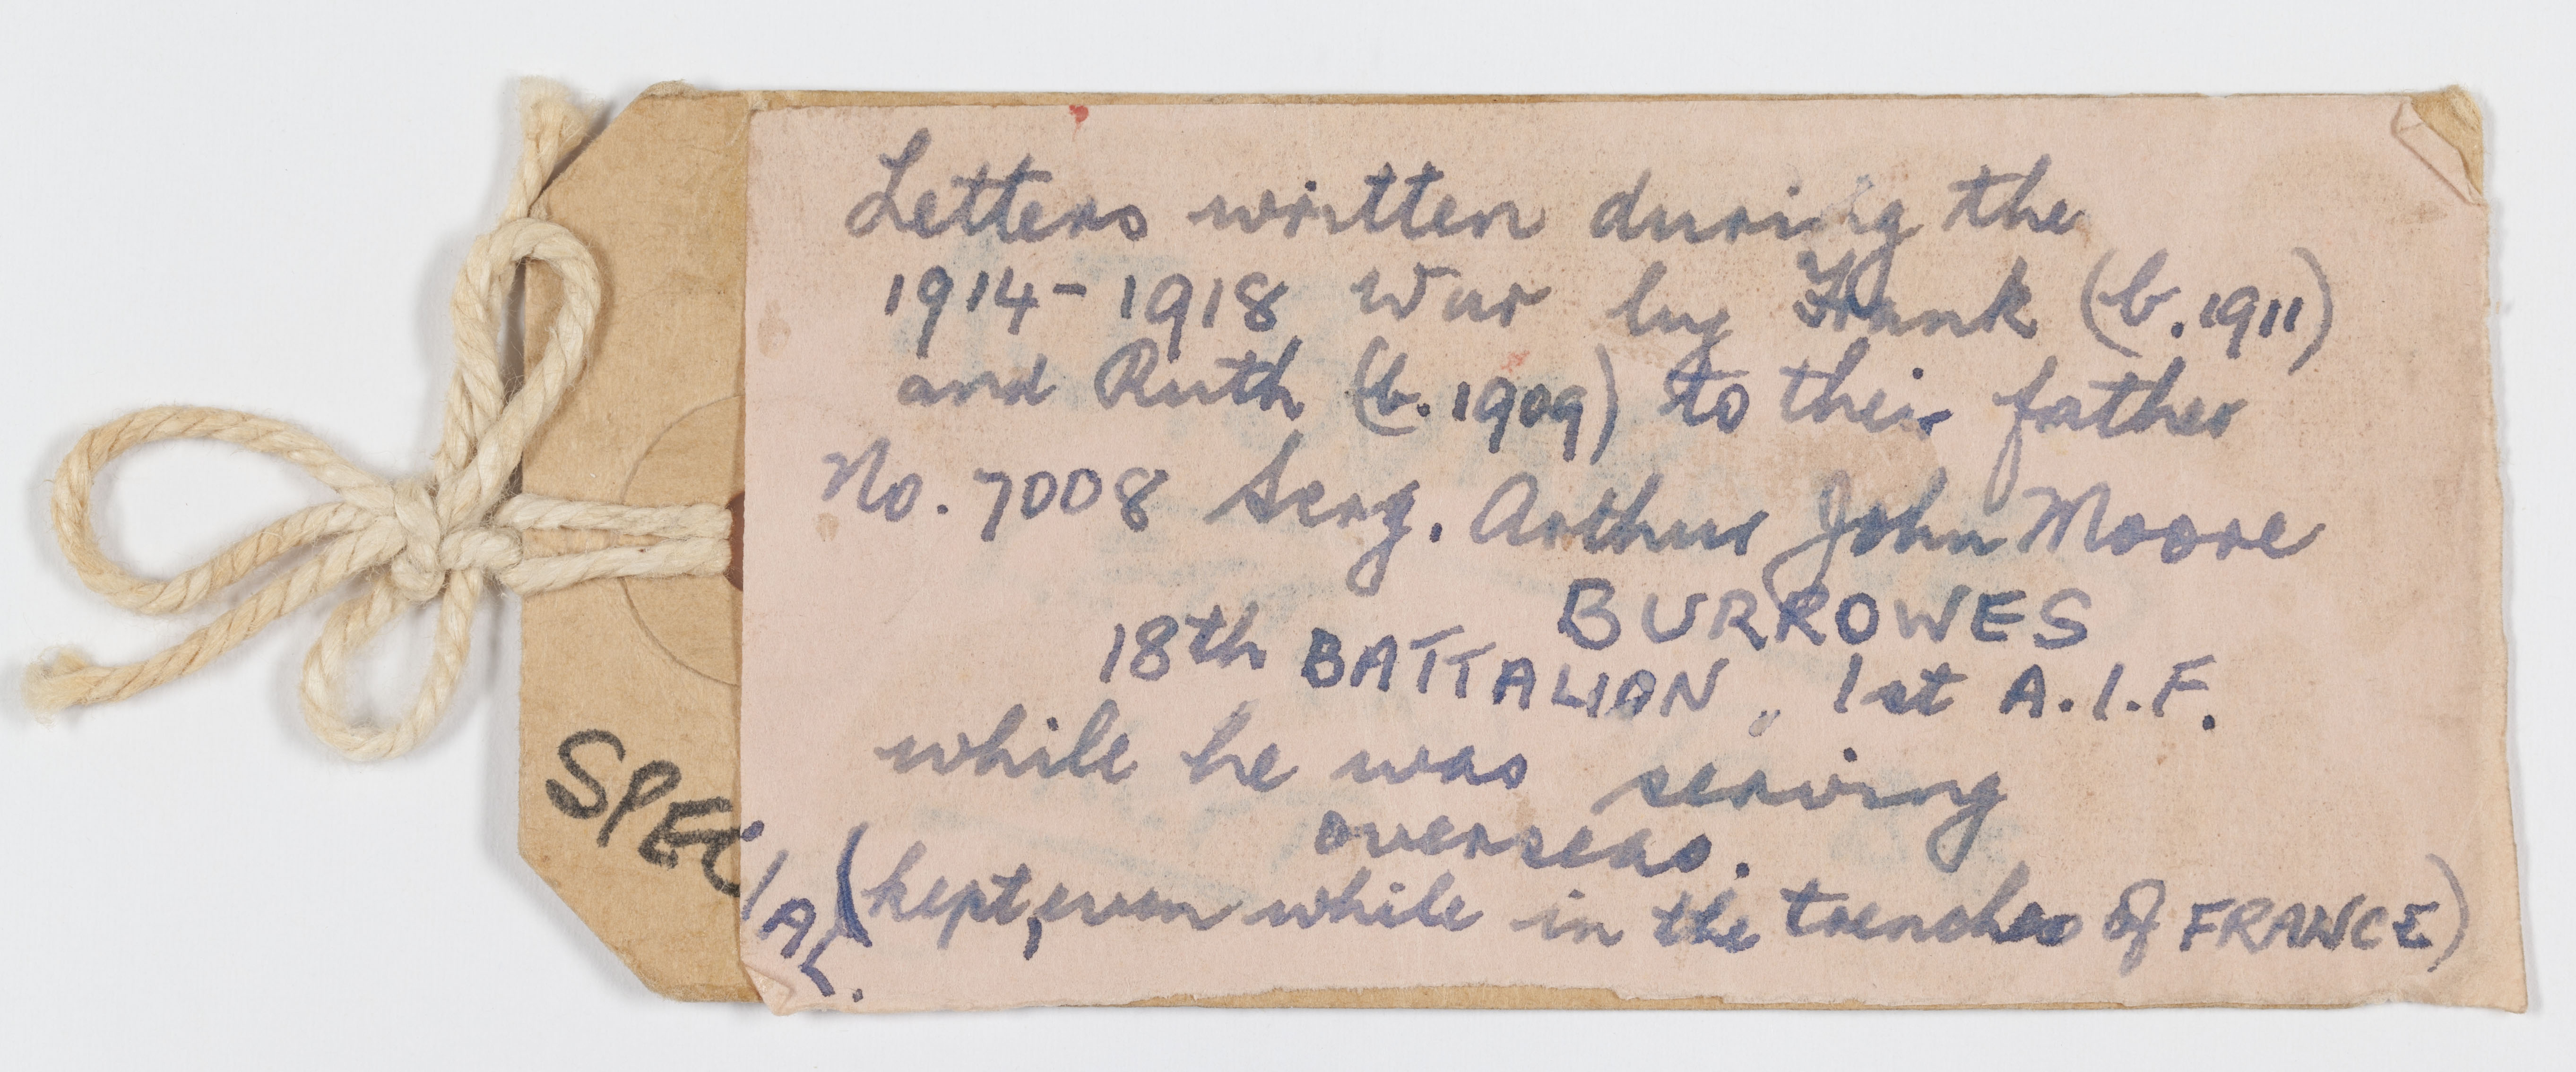 """A label indicating """"Letters written during the 1914-1918 War by [Frank and Ruth] to their father [Arthur Burrowes]..."""""""